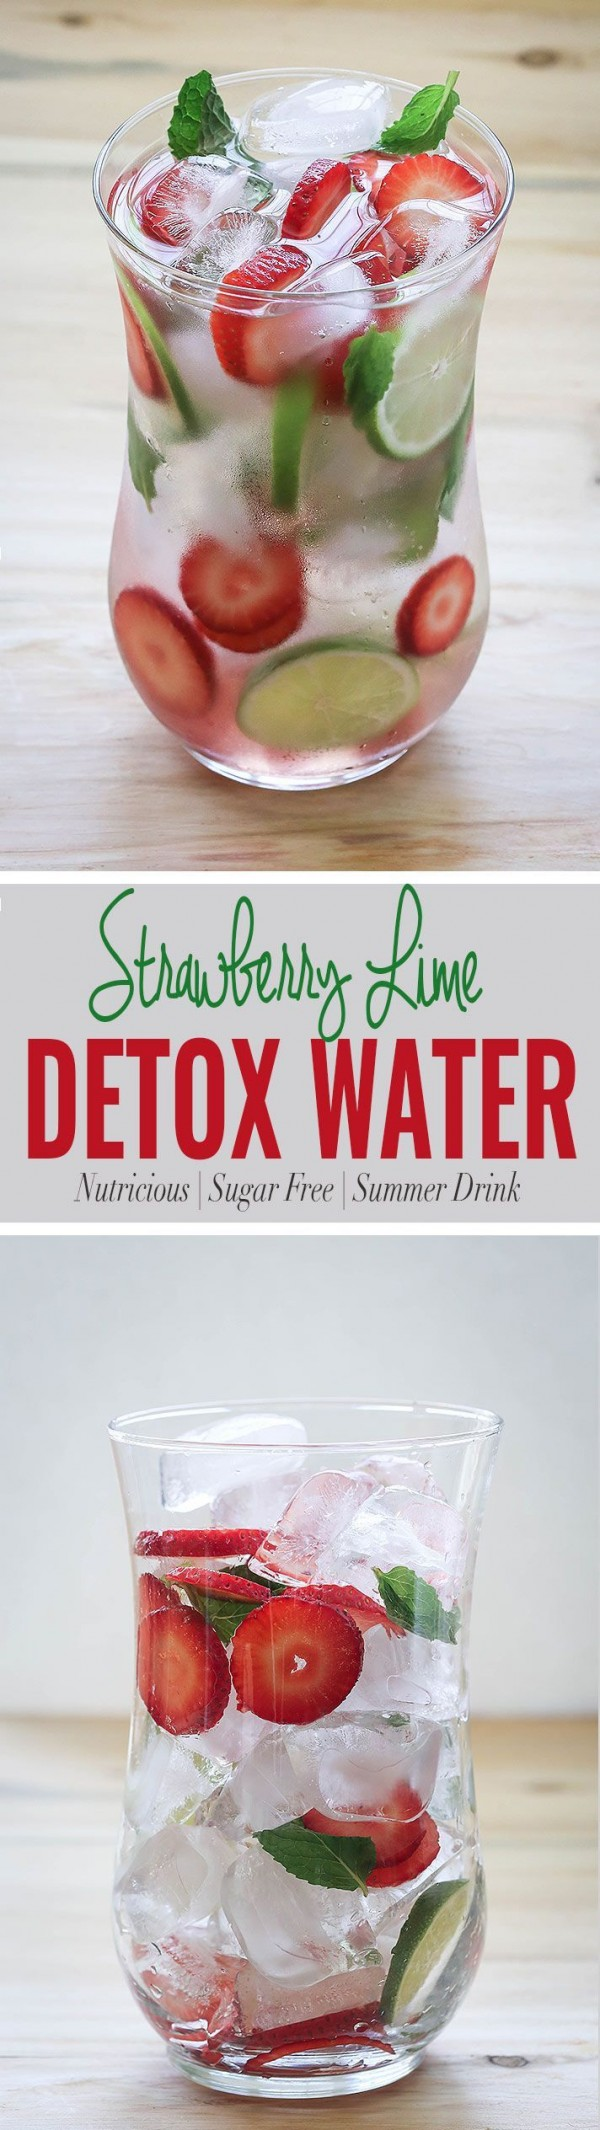 Get the recipe Strawberry Lime Detox Water @recipes_to_go